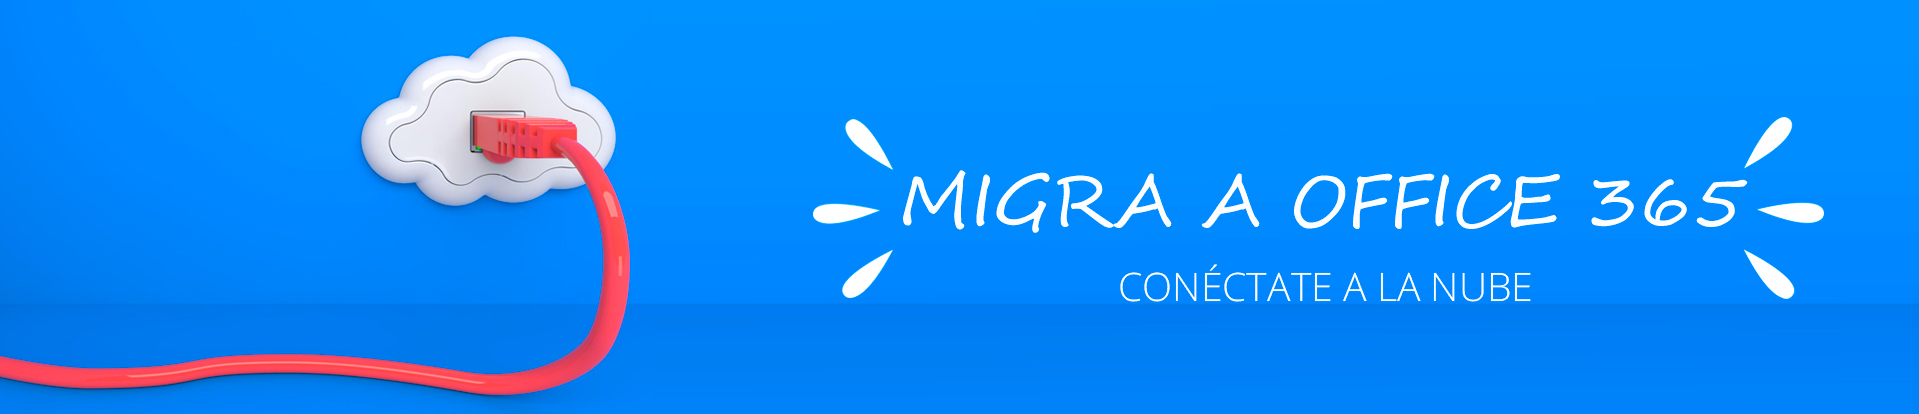 Banners-MIGRA-A-OFFICE-365